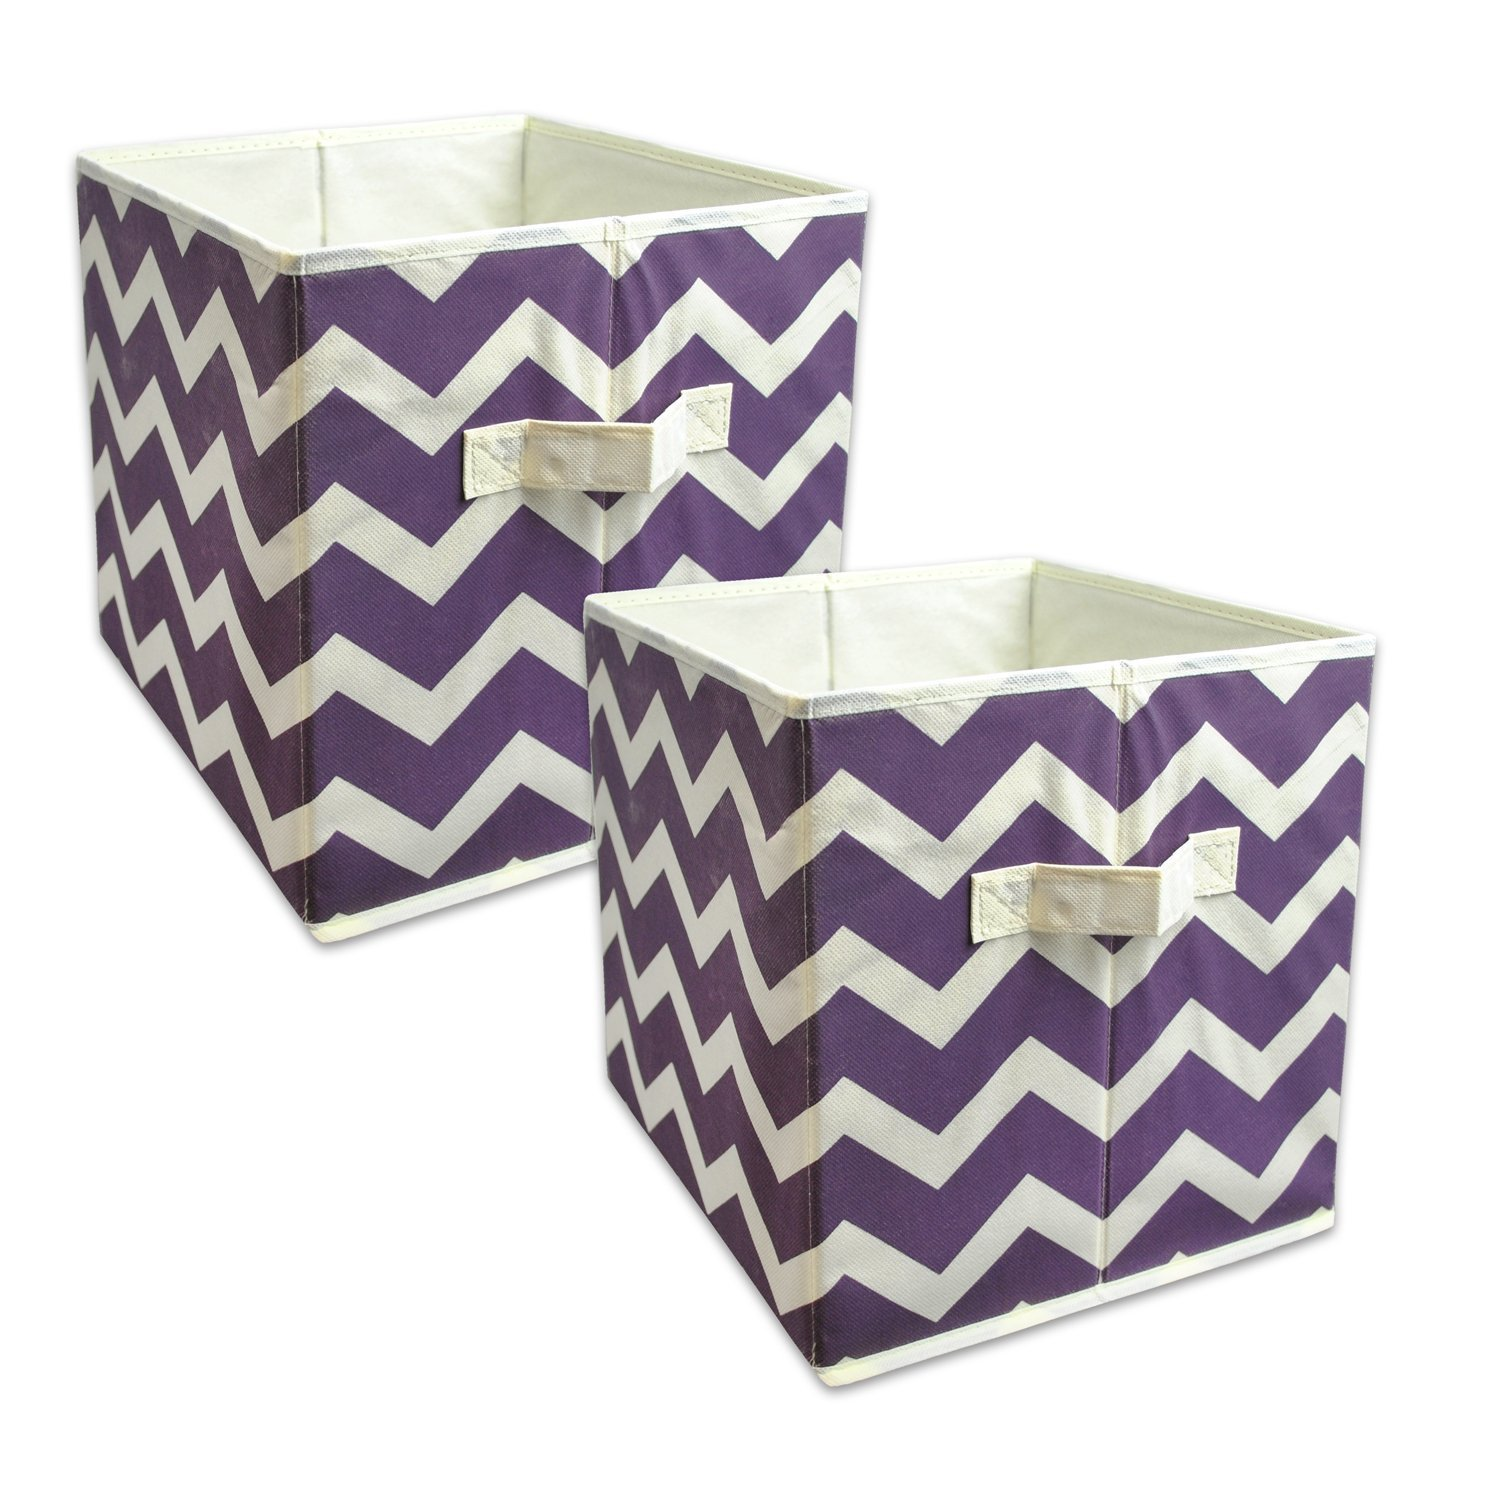 Sino Banyan Foldable Fabric Storage Containers cube organizers,everyday Storage Needs,Chevron Purple - Set of 2